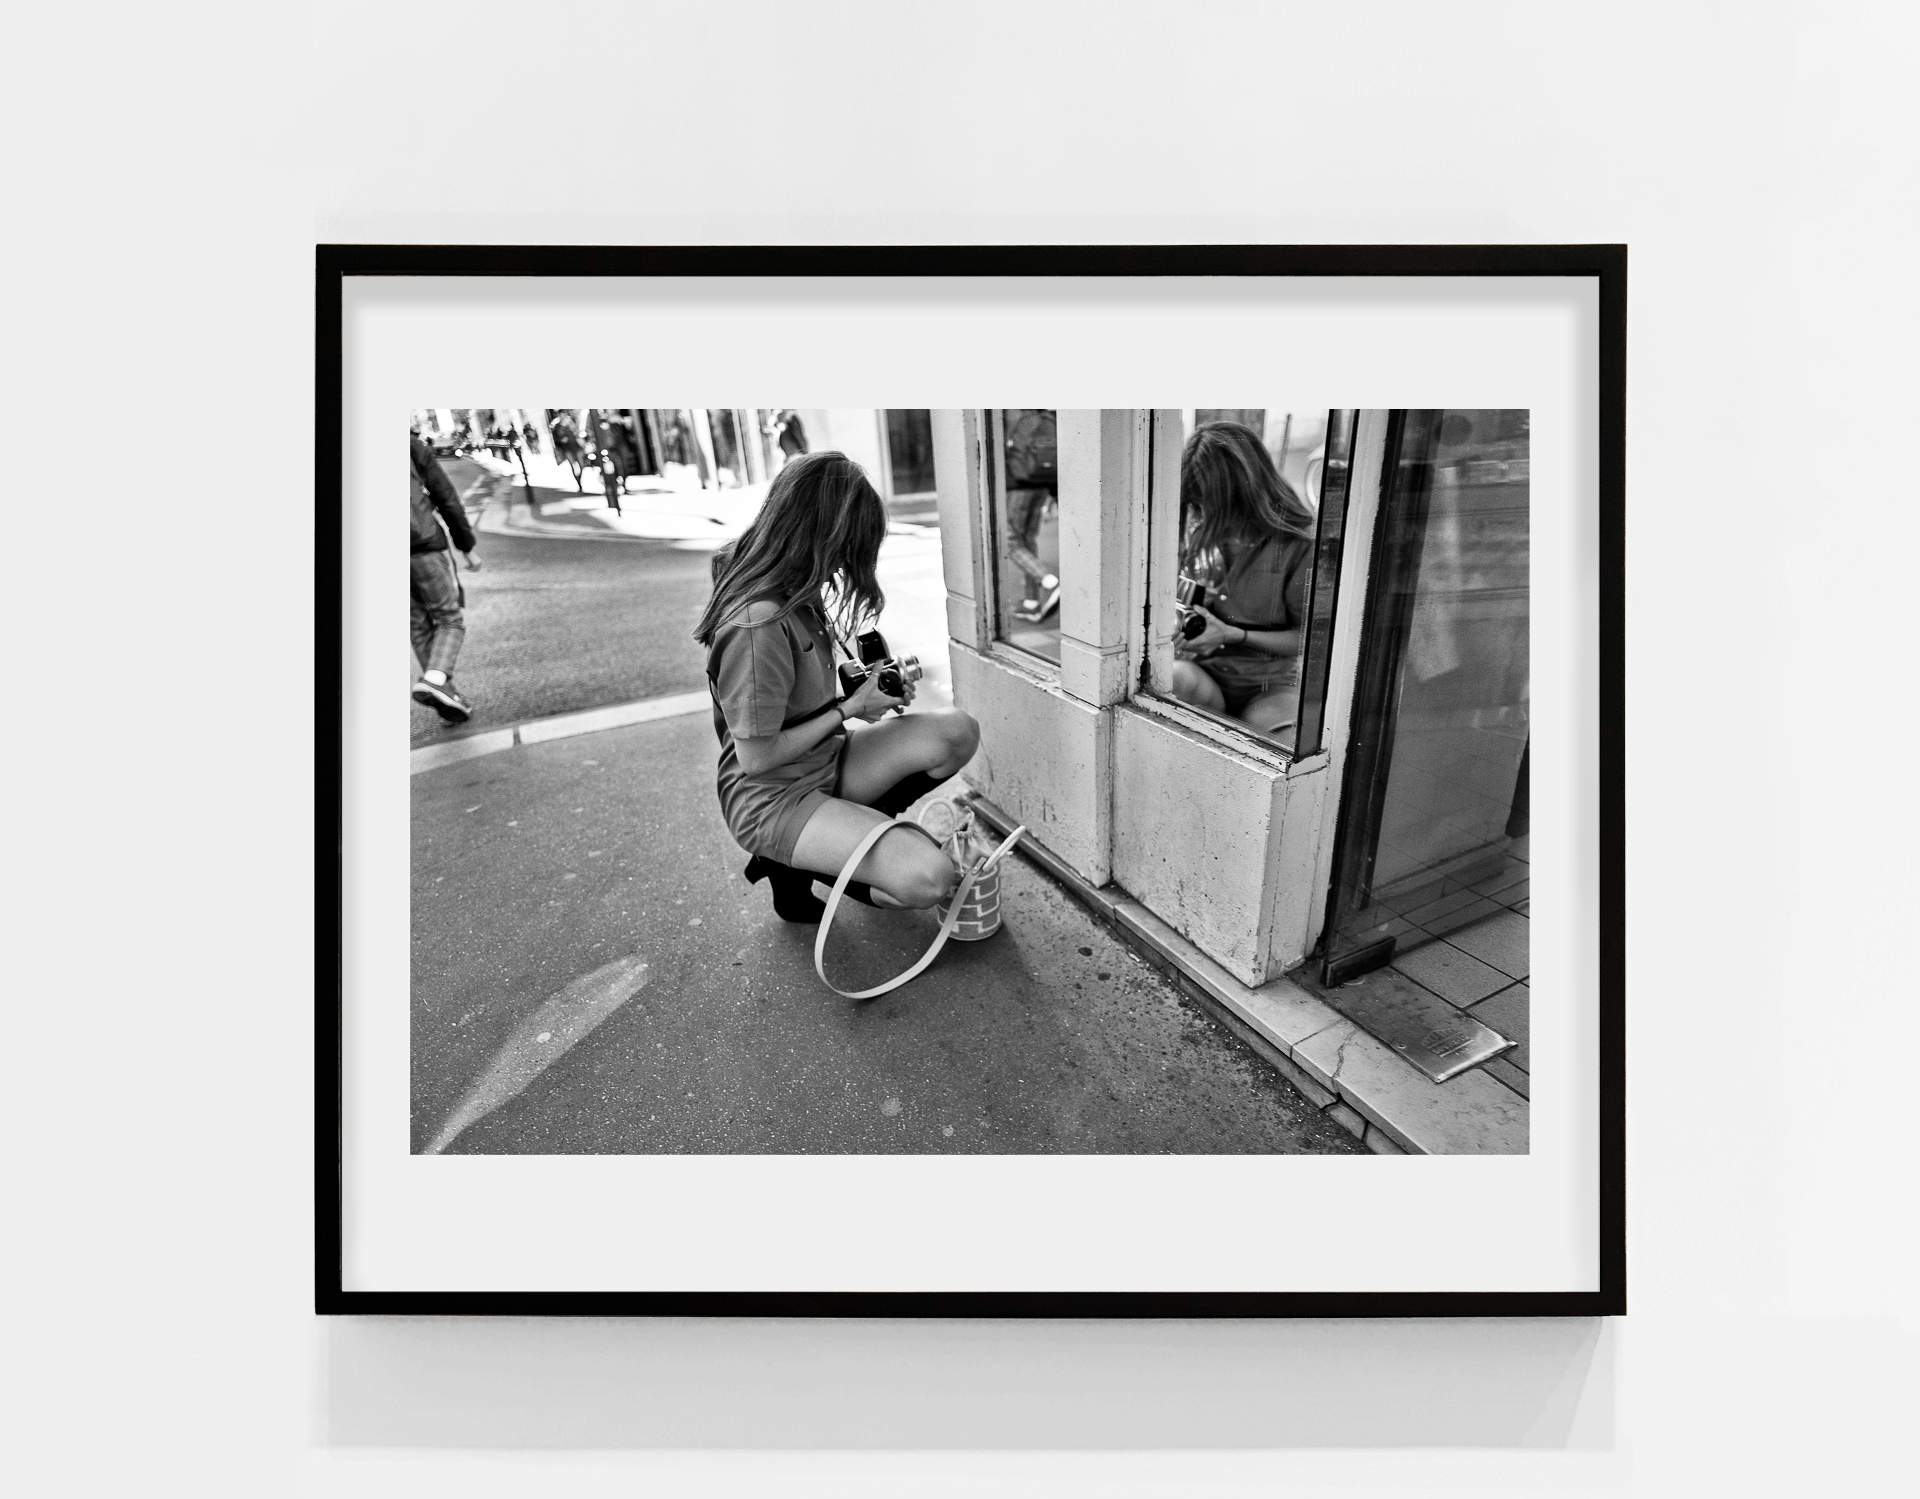 Tirage_Paris-Lady selfie_40x60